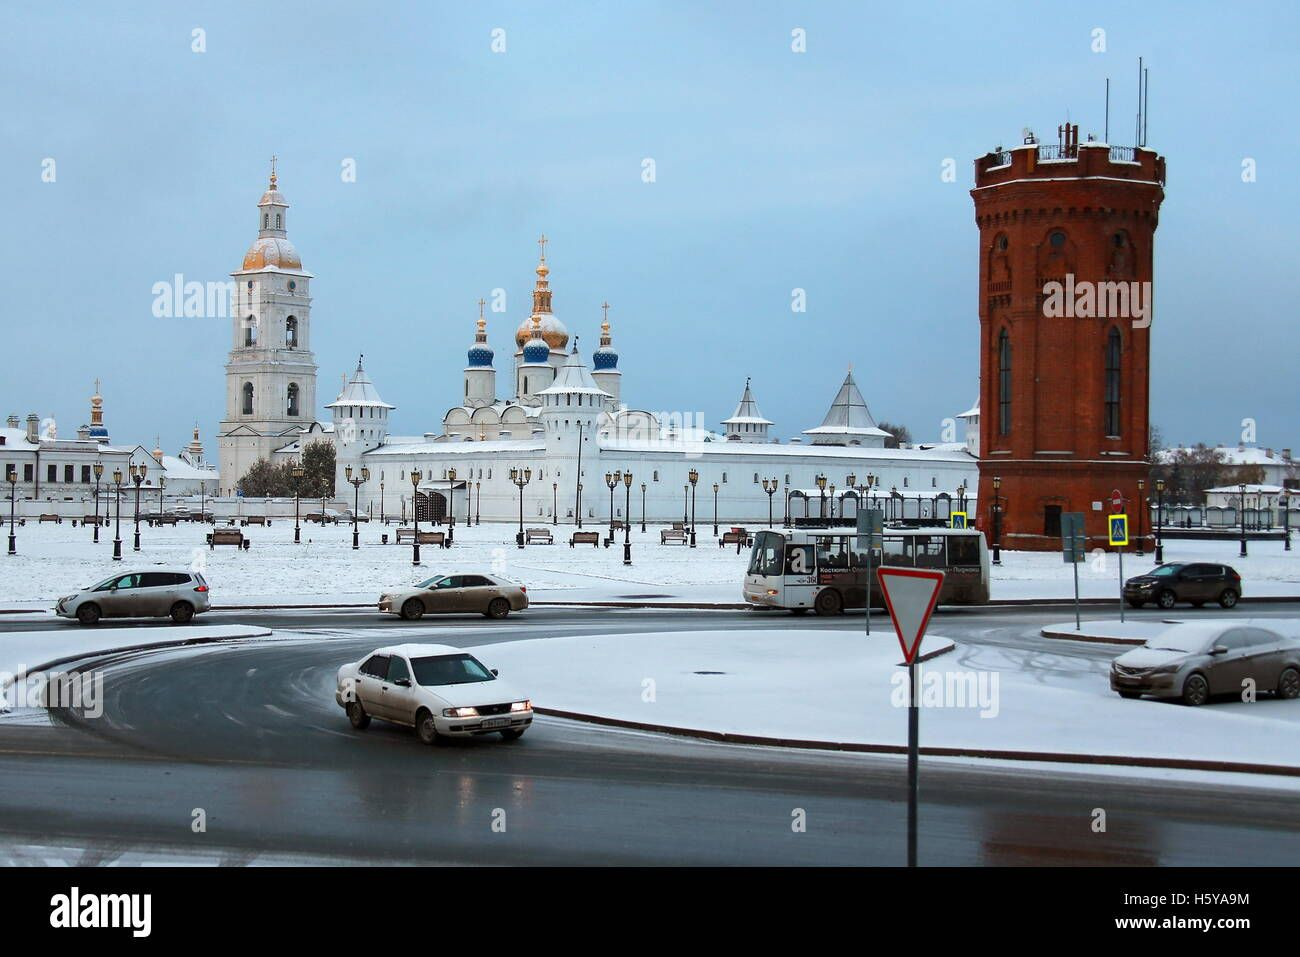 TOBOLSK, TYUMEN REGION, RUSSIA - OCTOBER 20, 2016: A view ...